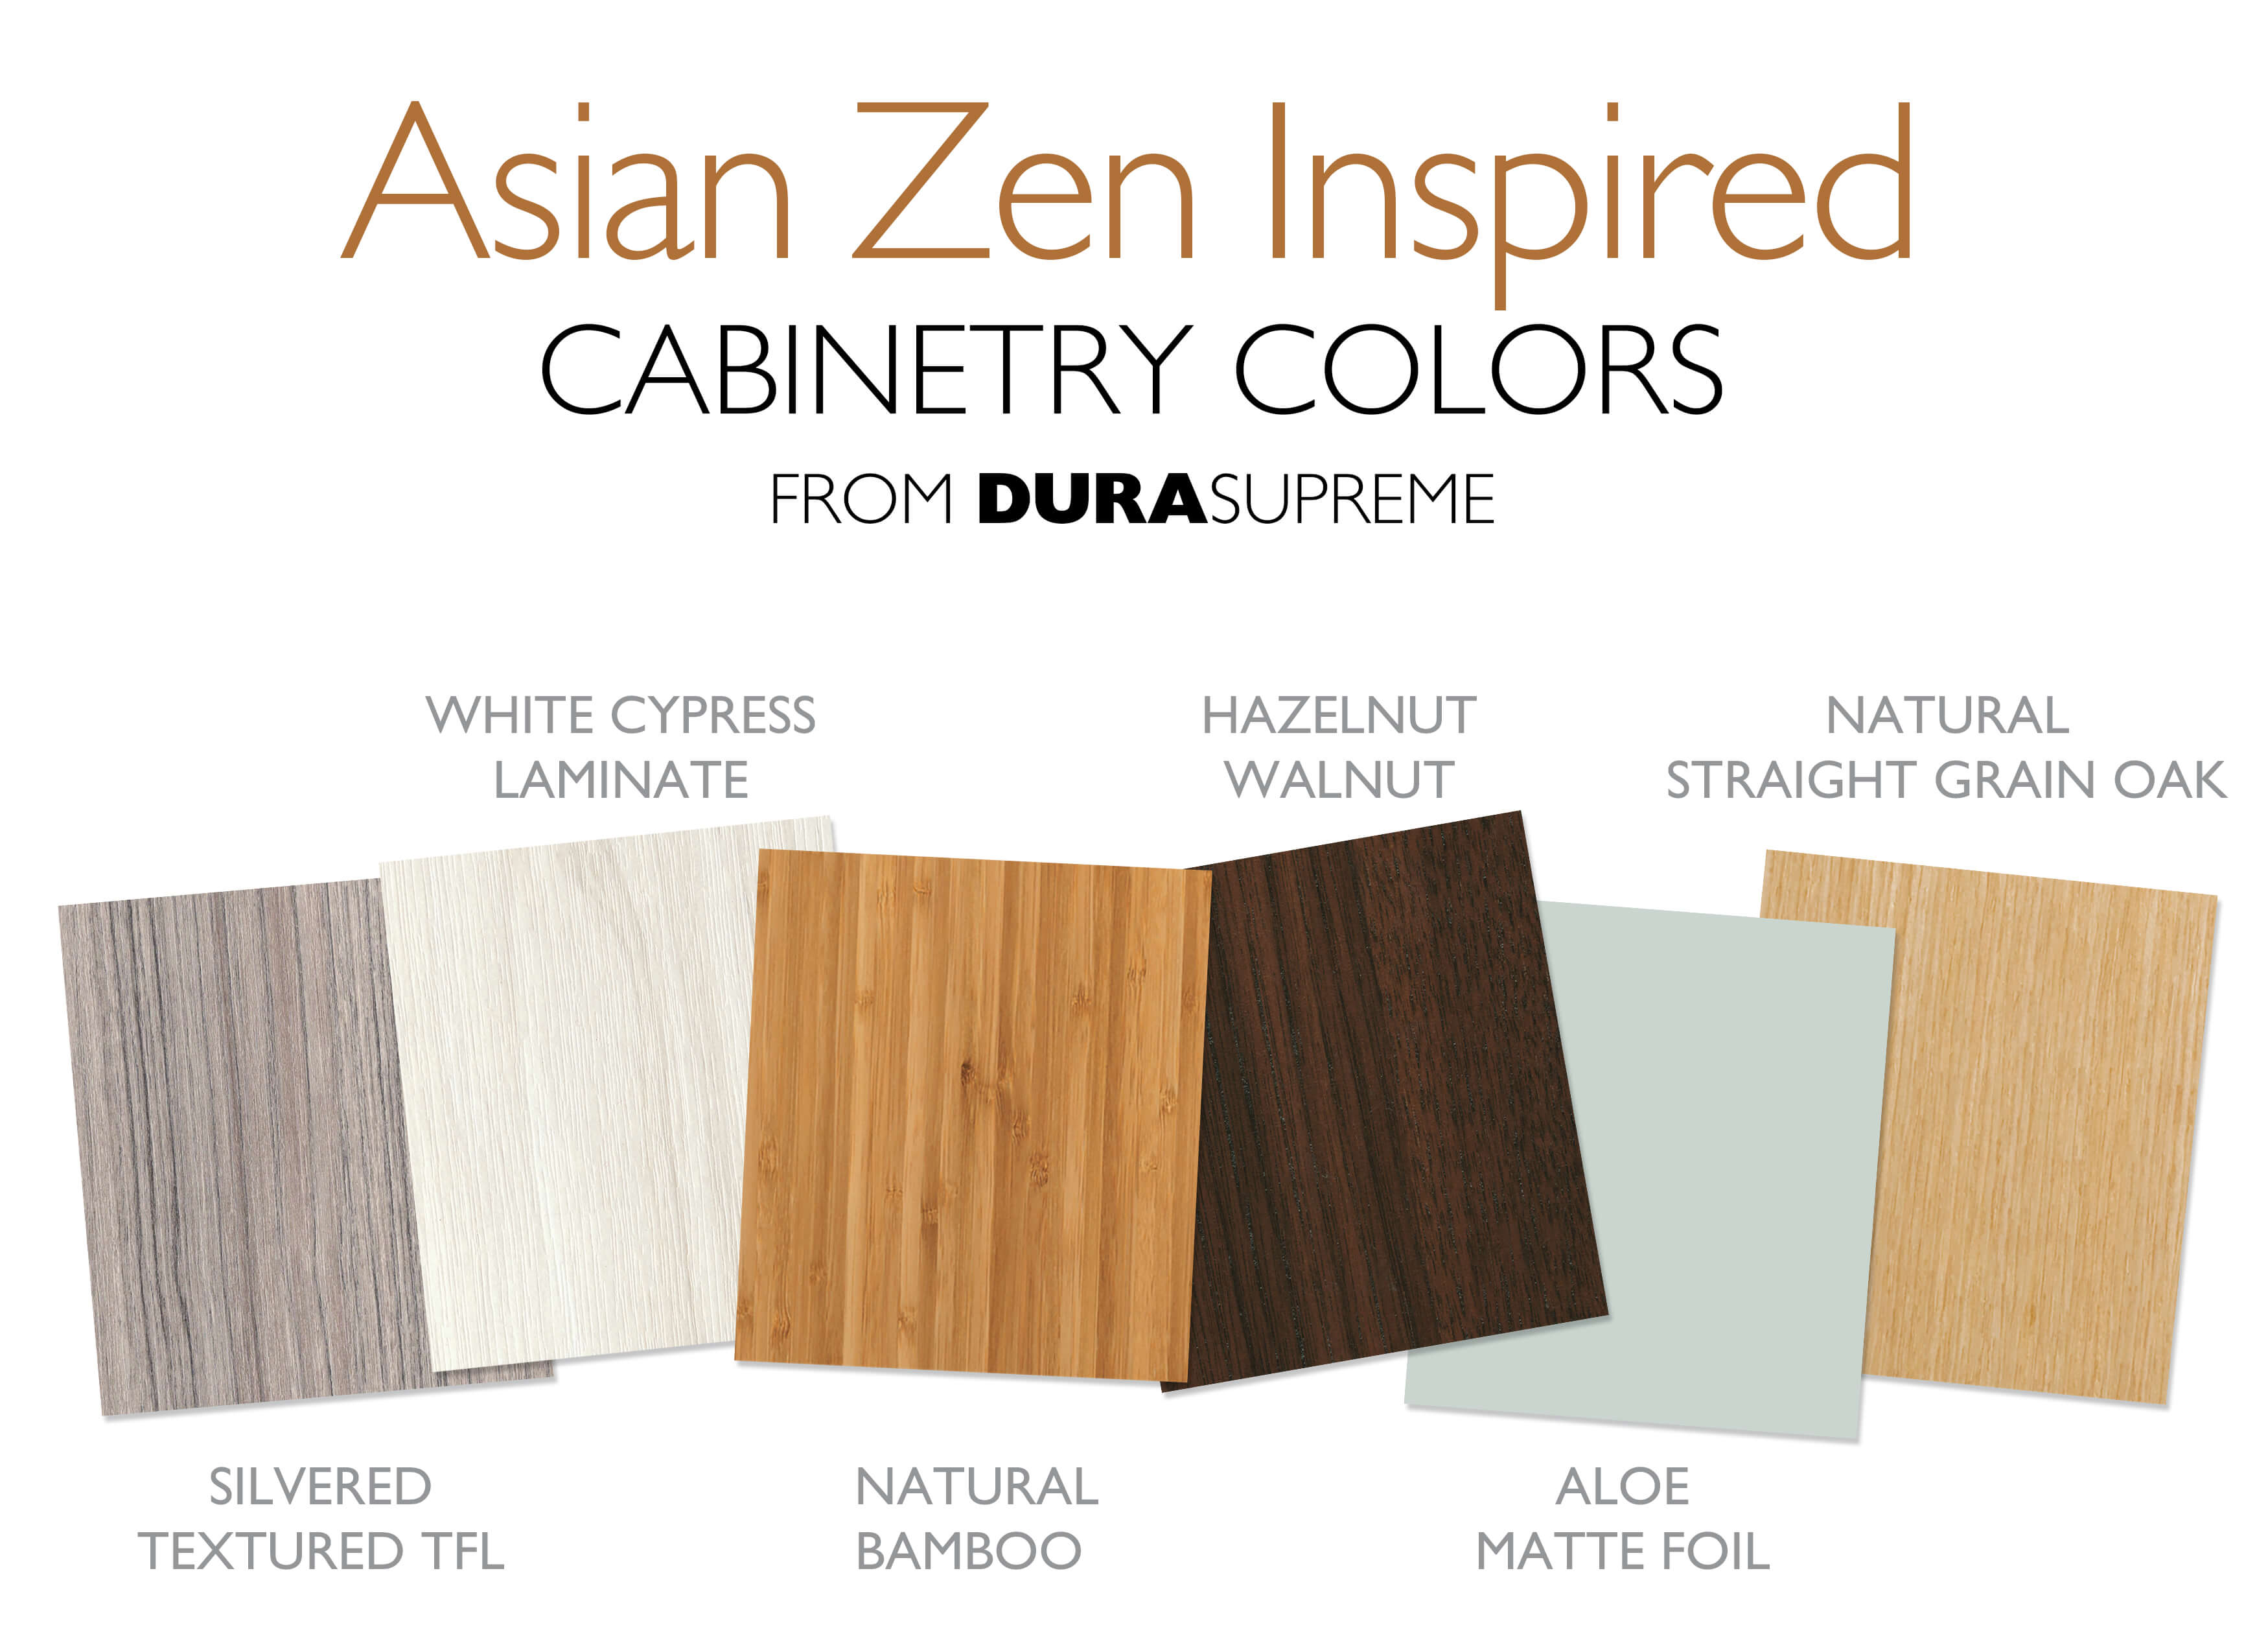 Dura Supreme Cabinetry finishes with an Asian Zen Style. Silvered Textured TFL, White Cypress Laminate, Natural Bamboo Exotic Veneer, Hazelnut Walnut, Aloe Matte Foil, Natural Straight Grain Oak.